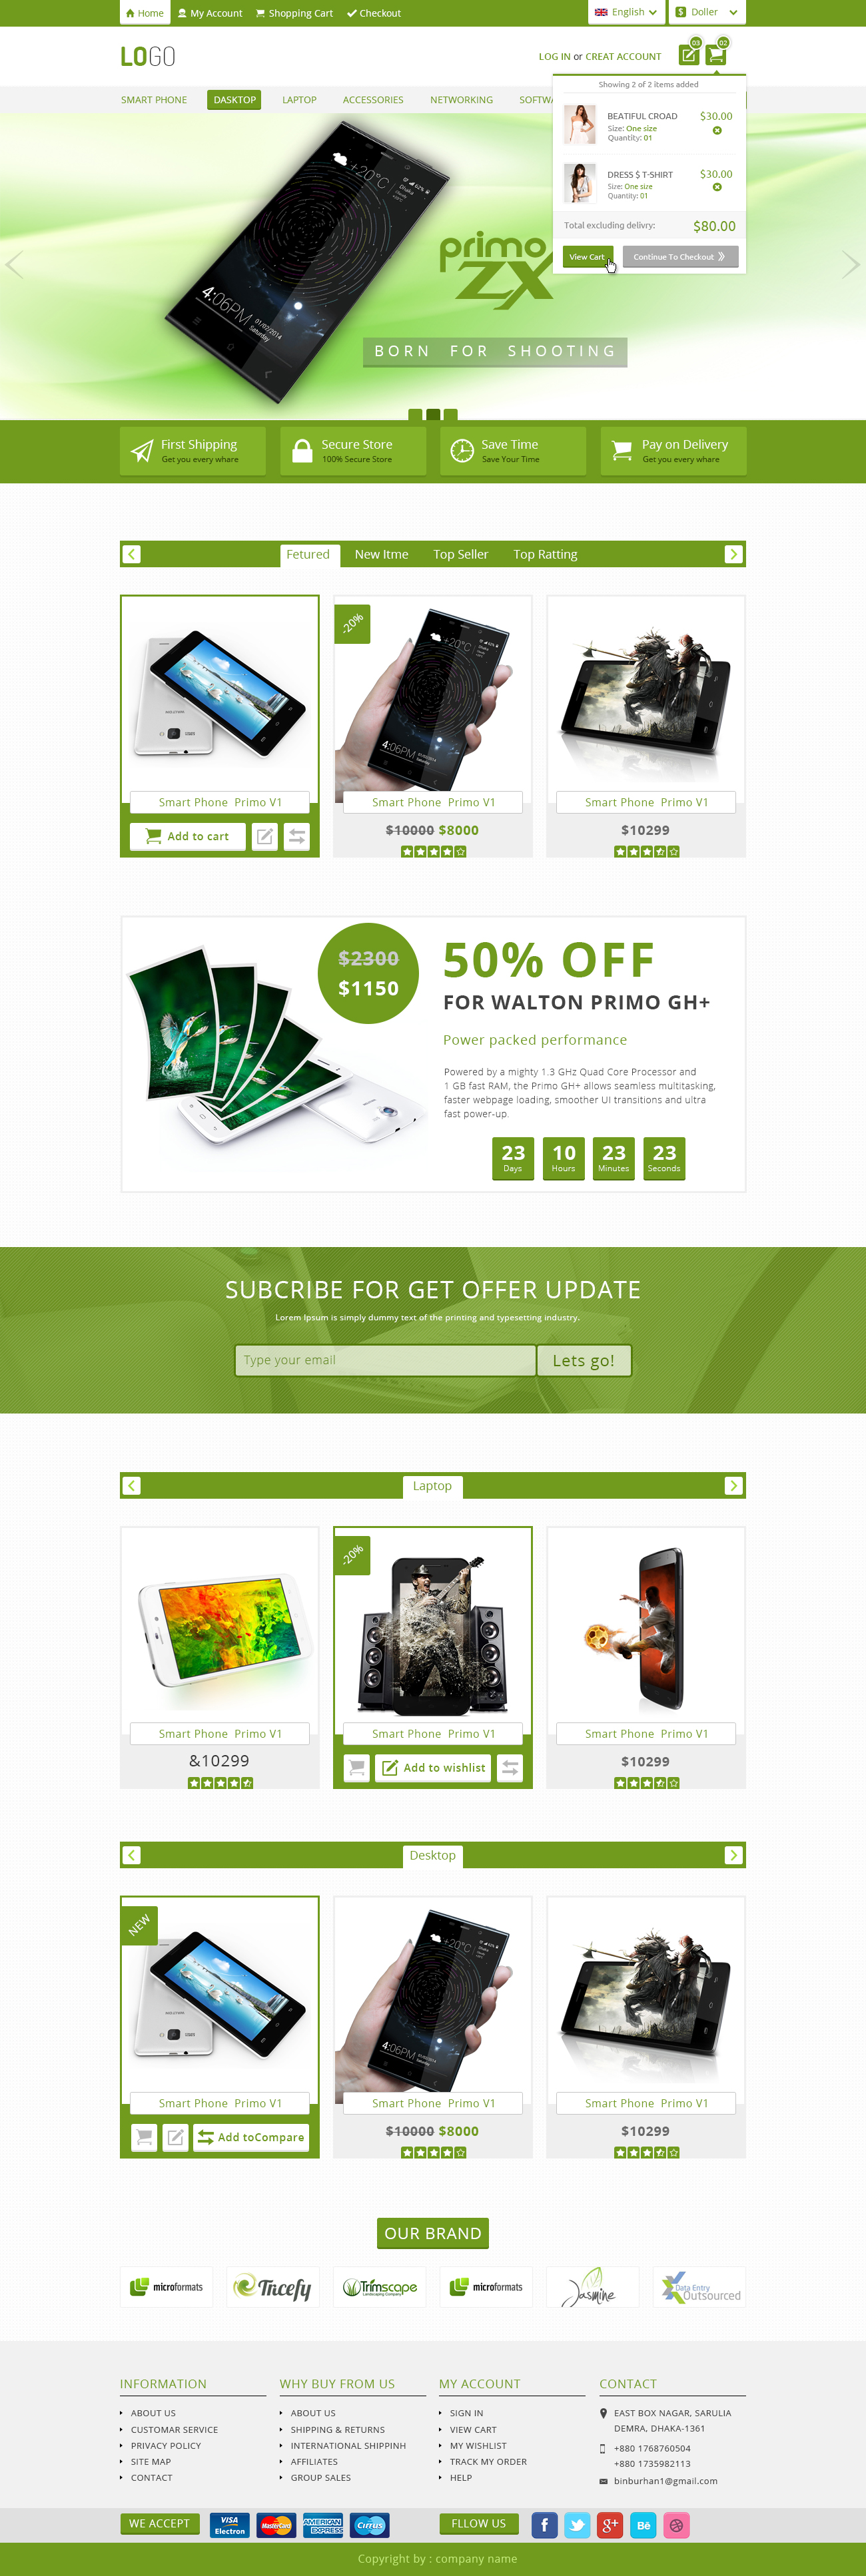 Free Ecommerce PSD template Download